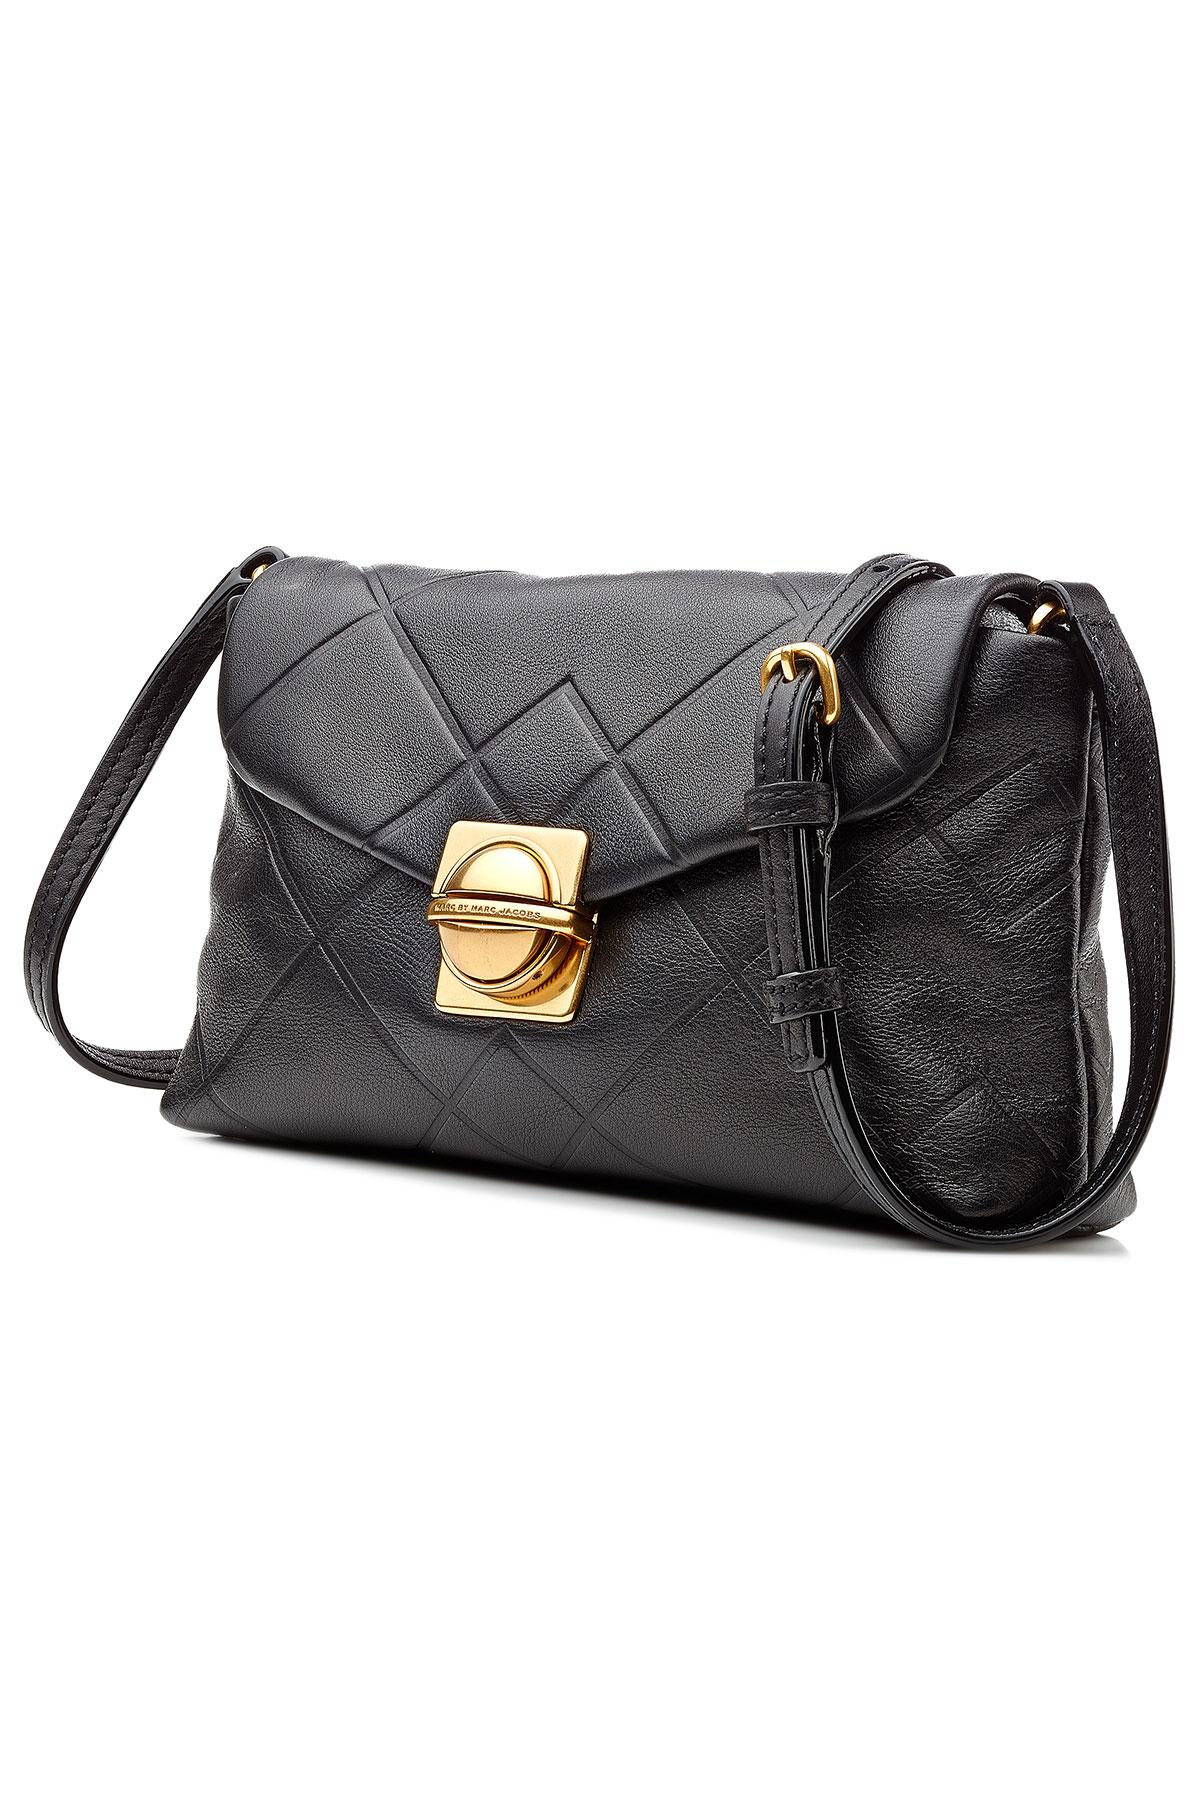 9819463a371a0 Marc Jacobs Quilted Crossbody Purse